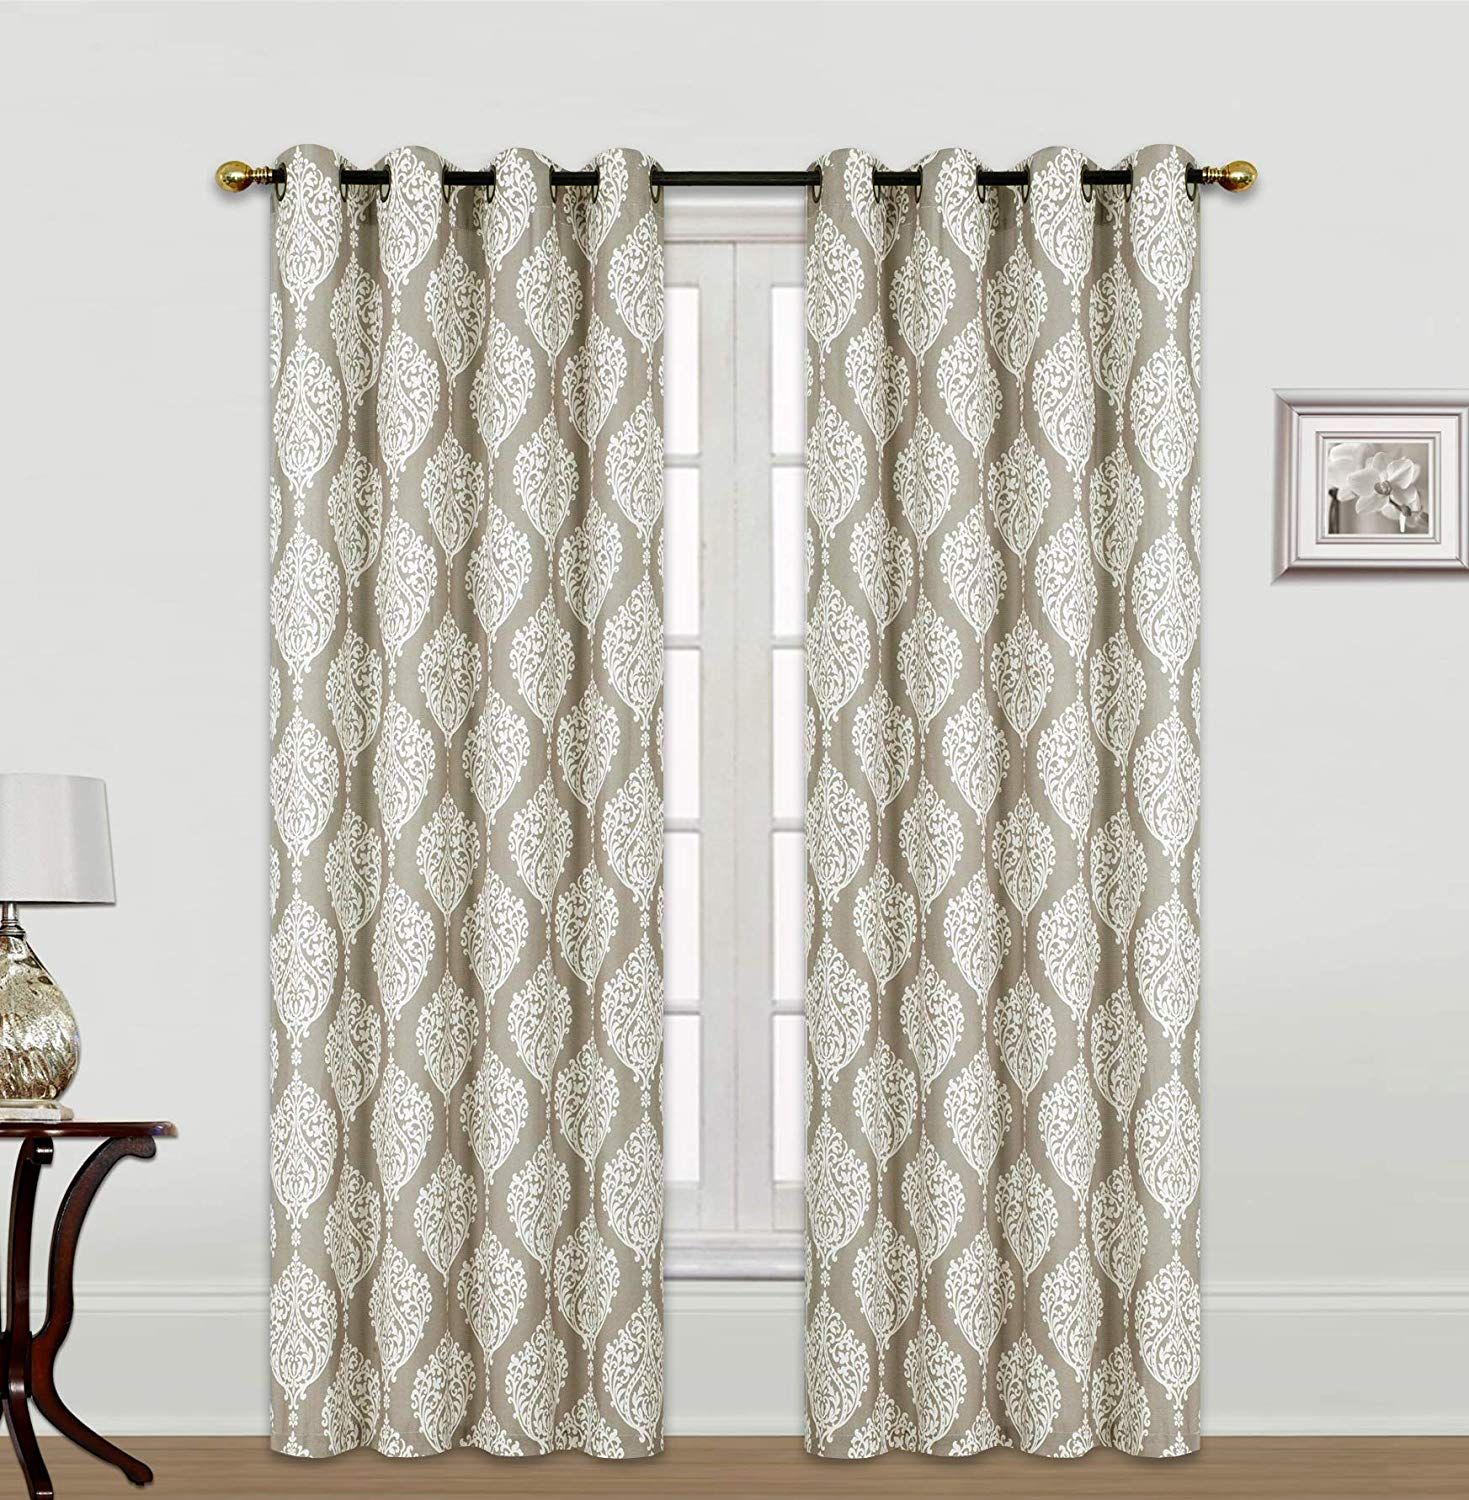 Set of 2 Kashi Home Scarlett 54x84 Inch Window Curtain with Grommets, Weave Fabric Decorative Damask Print Panel for Living Room, Bedroom - Taupe